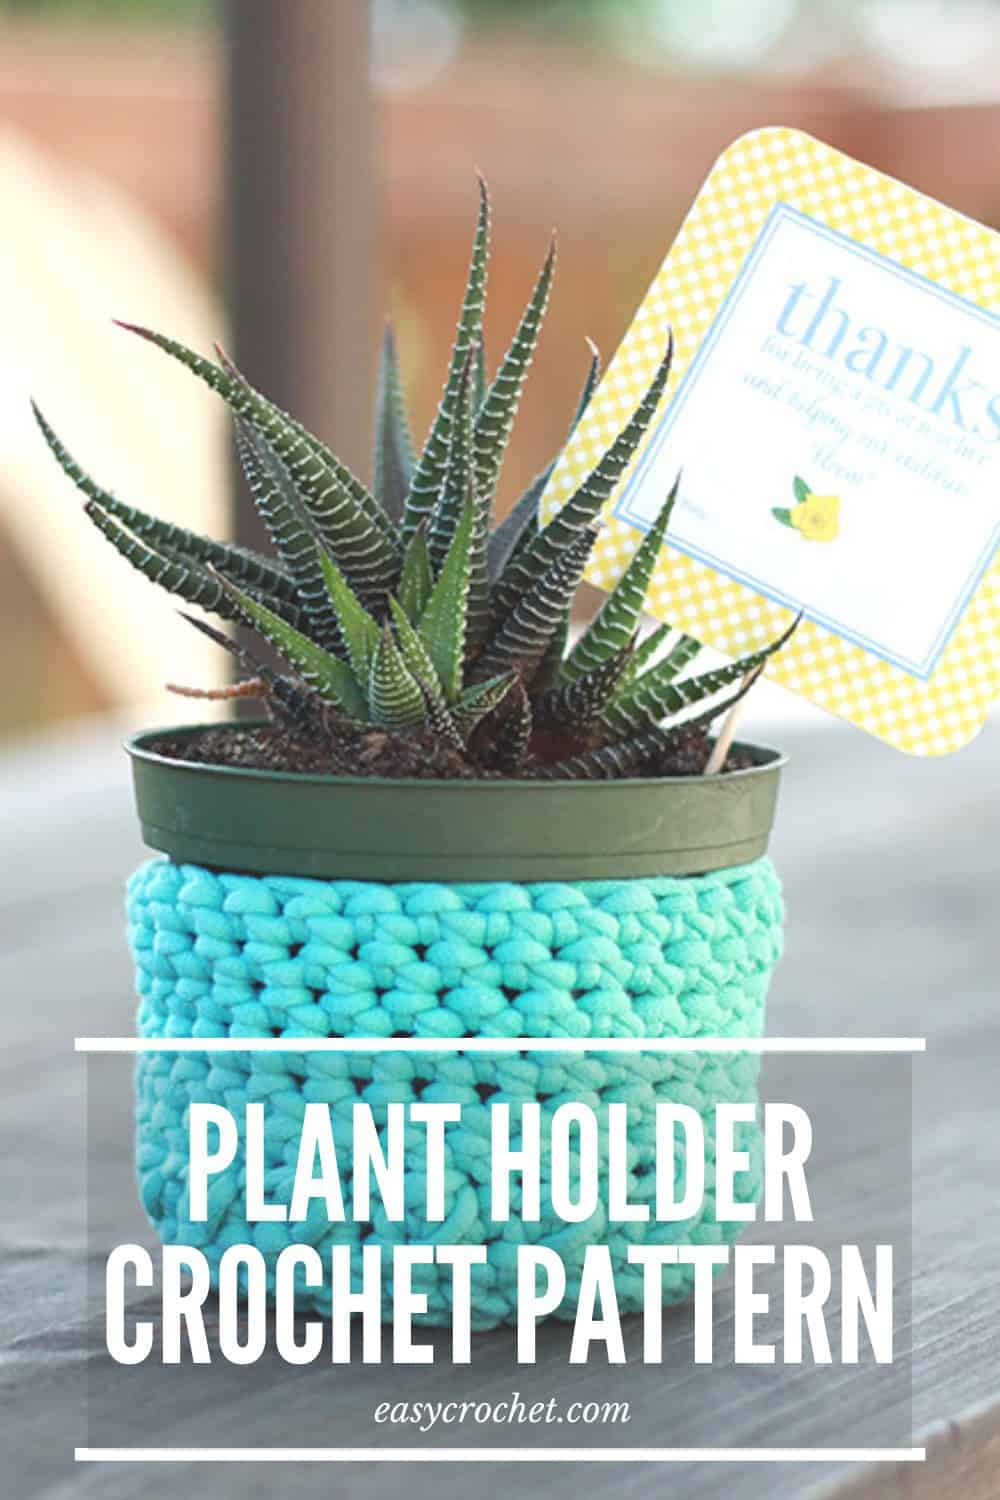 Crochet Plant Holder Pattern via @easycrochetcom